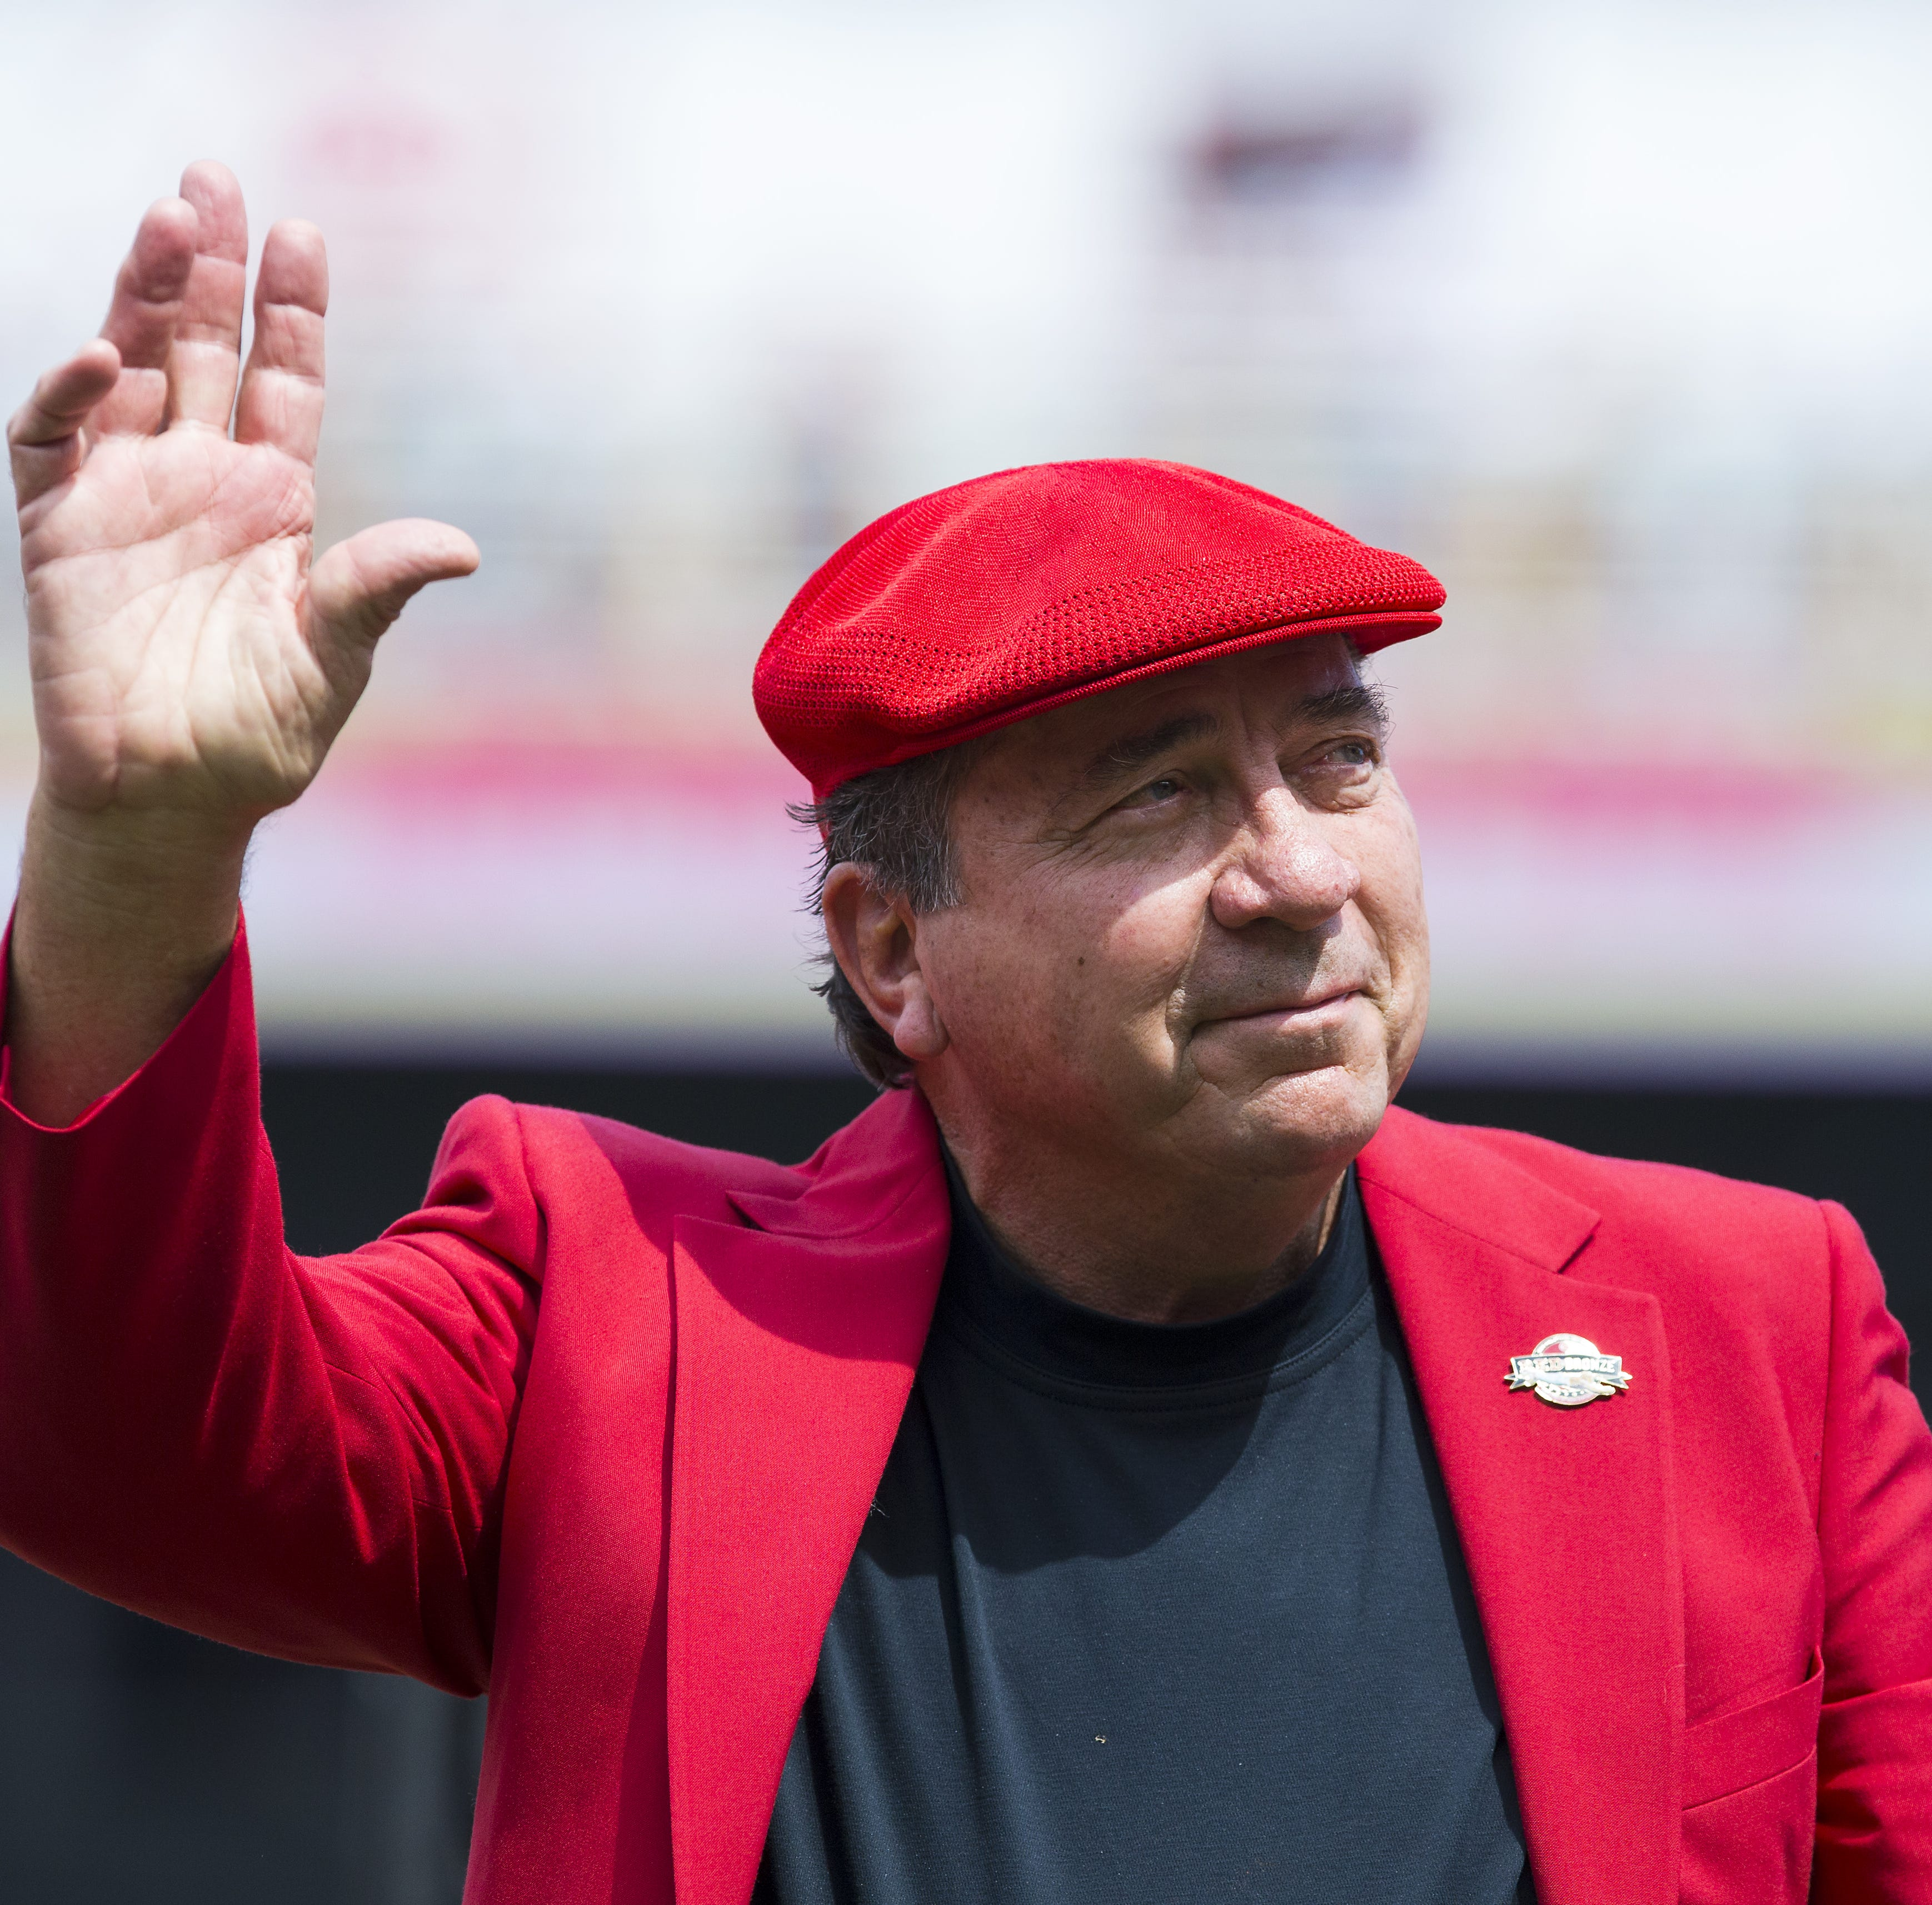 Johnny Bench's career, fatherhood are subjects of 'MLB Network Presents' documentary